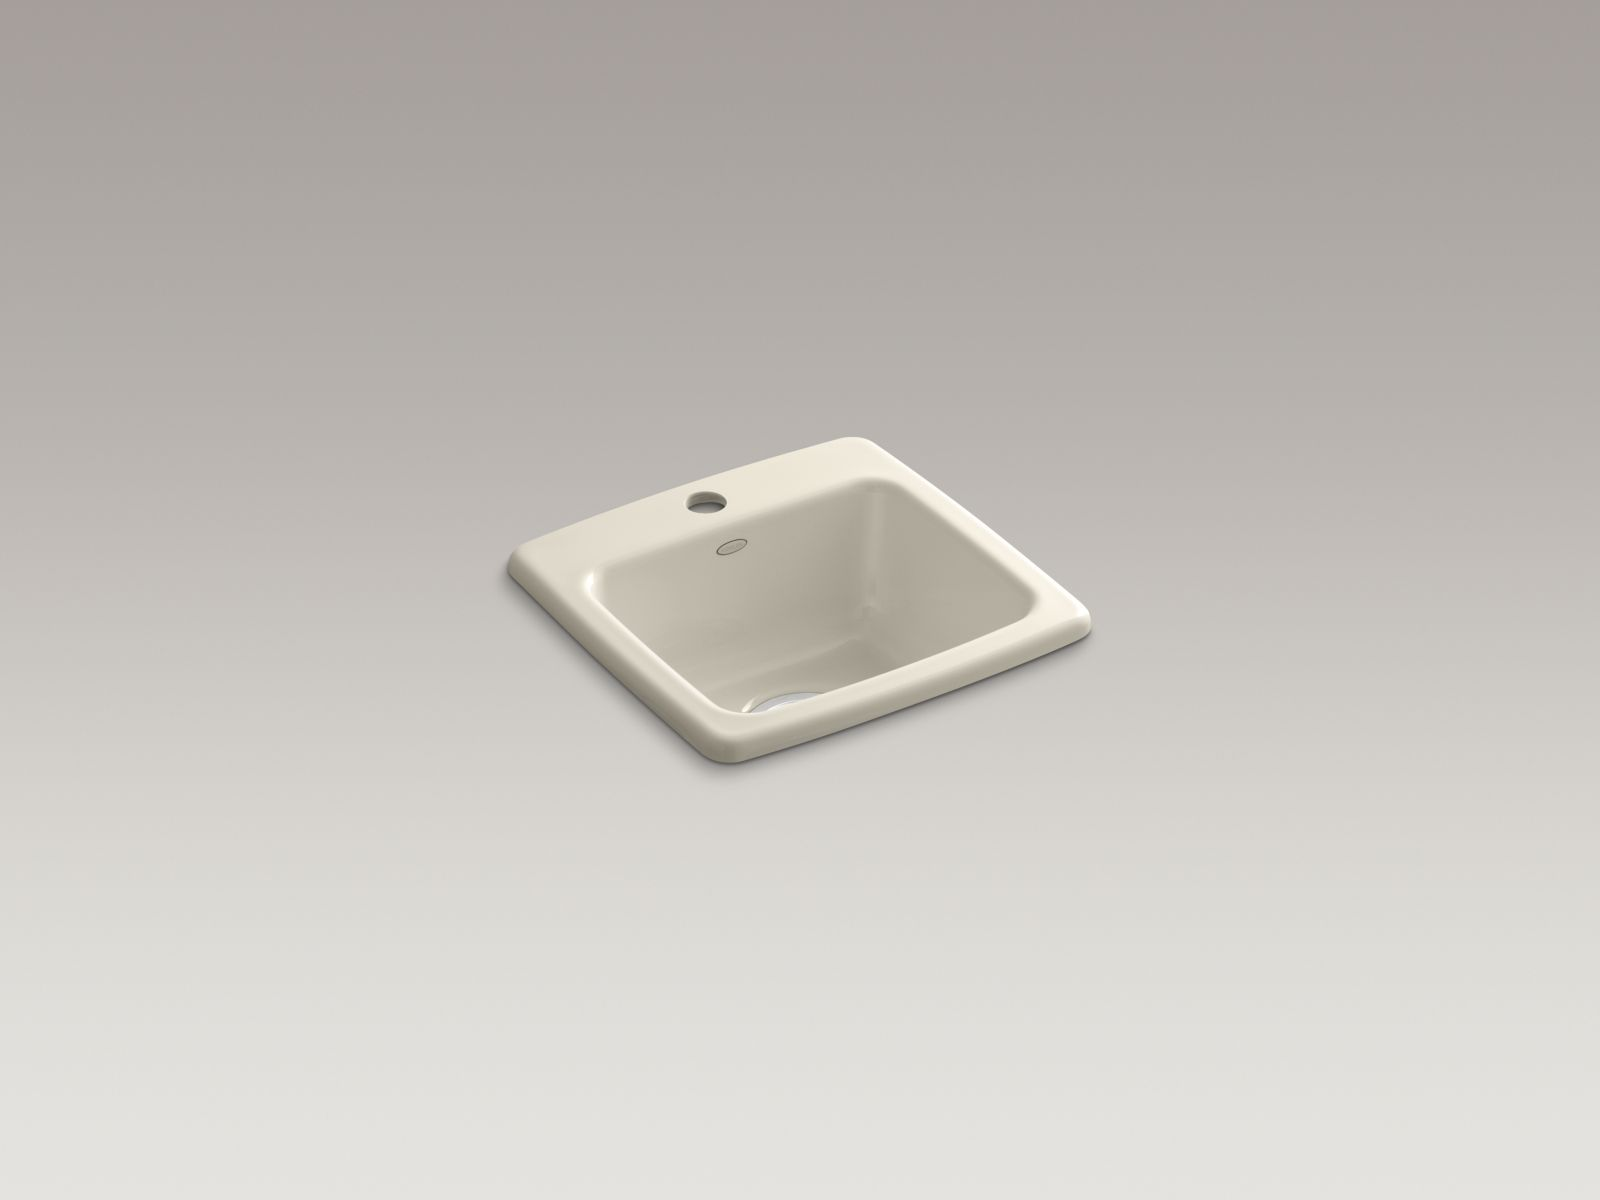 Kohler K-6015-1-47 Gimlet Self-rimming Single-bowl Bar Sink with Single Faucet Hole Almond